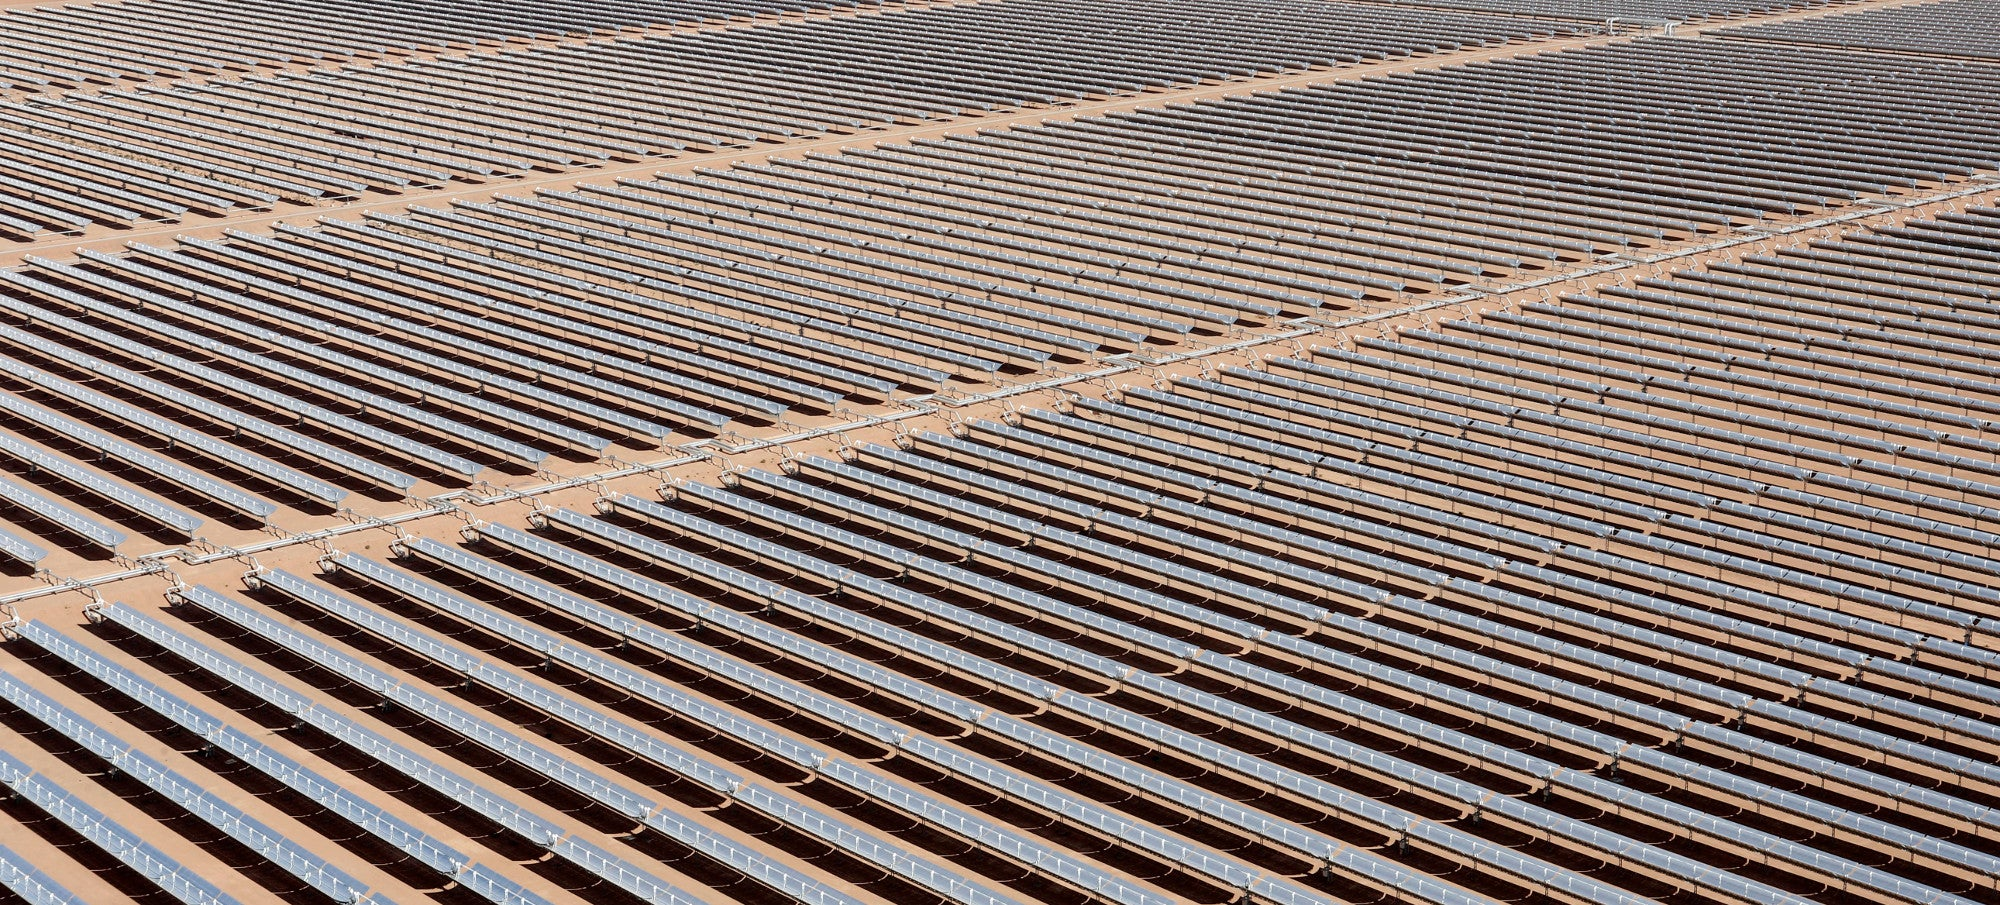 Morocco Switches on First Phase of the World's Largest Solar Plant